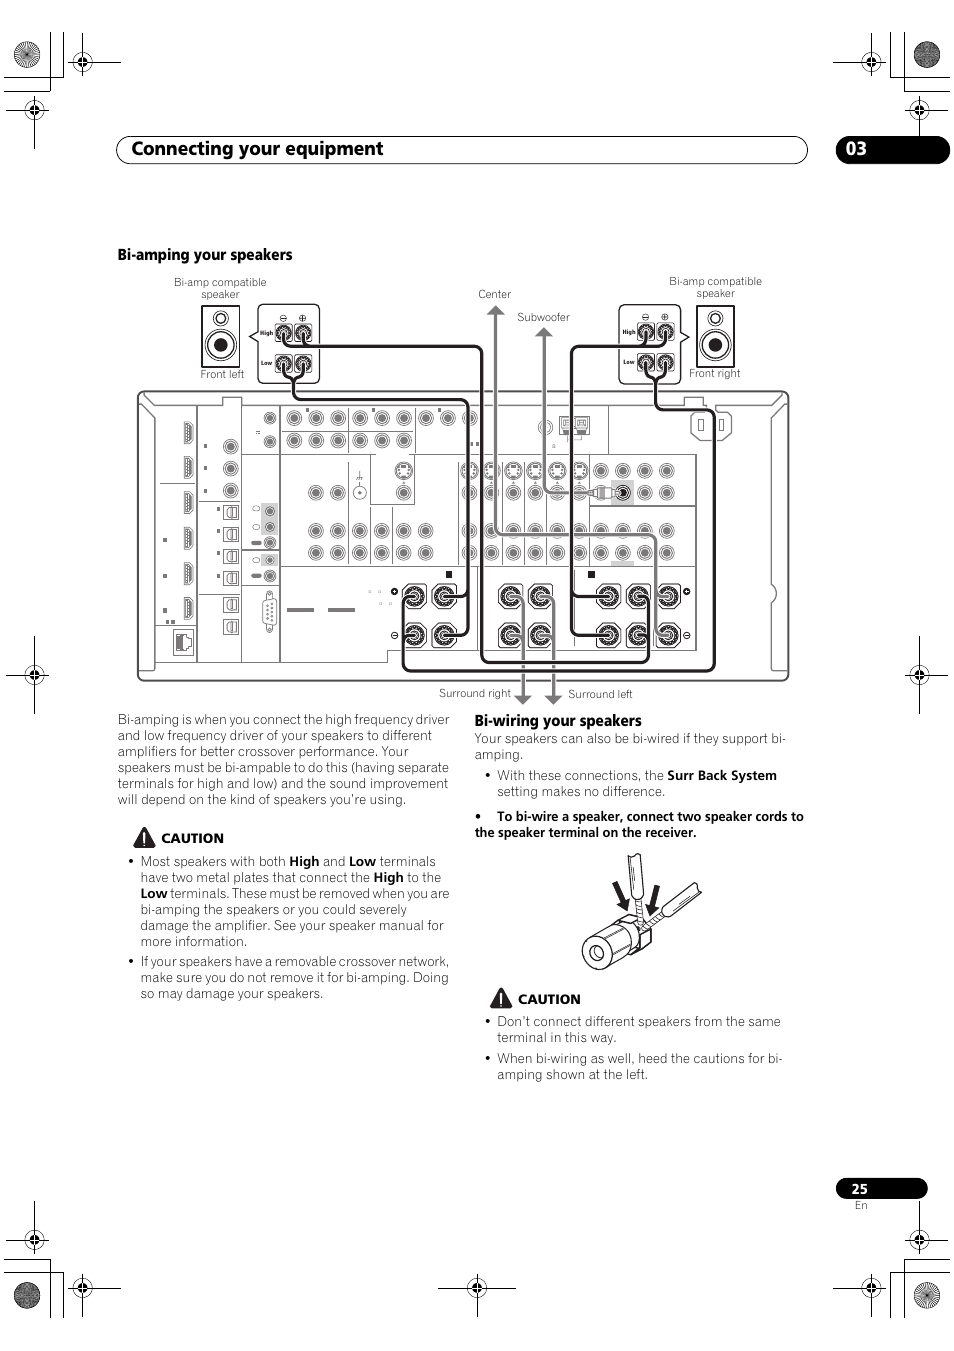 Bi Amping Your Speakers Wiring Connecting Subwoofer On Speaker Amplifier And Home Cinema Equipment 03 Pioneer Sc Lx82 User Manual Page 25 148